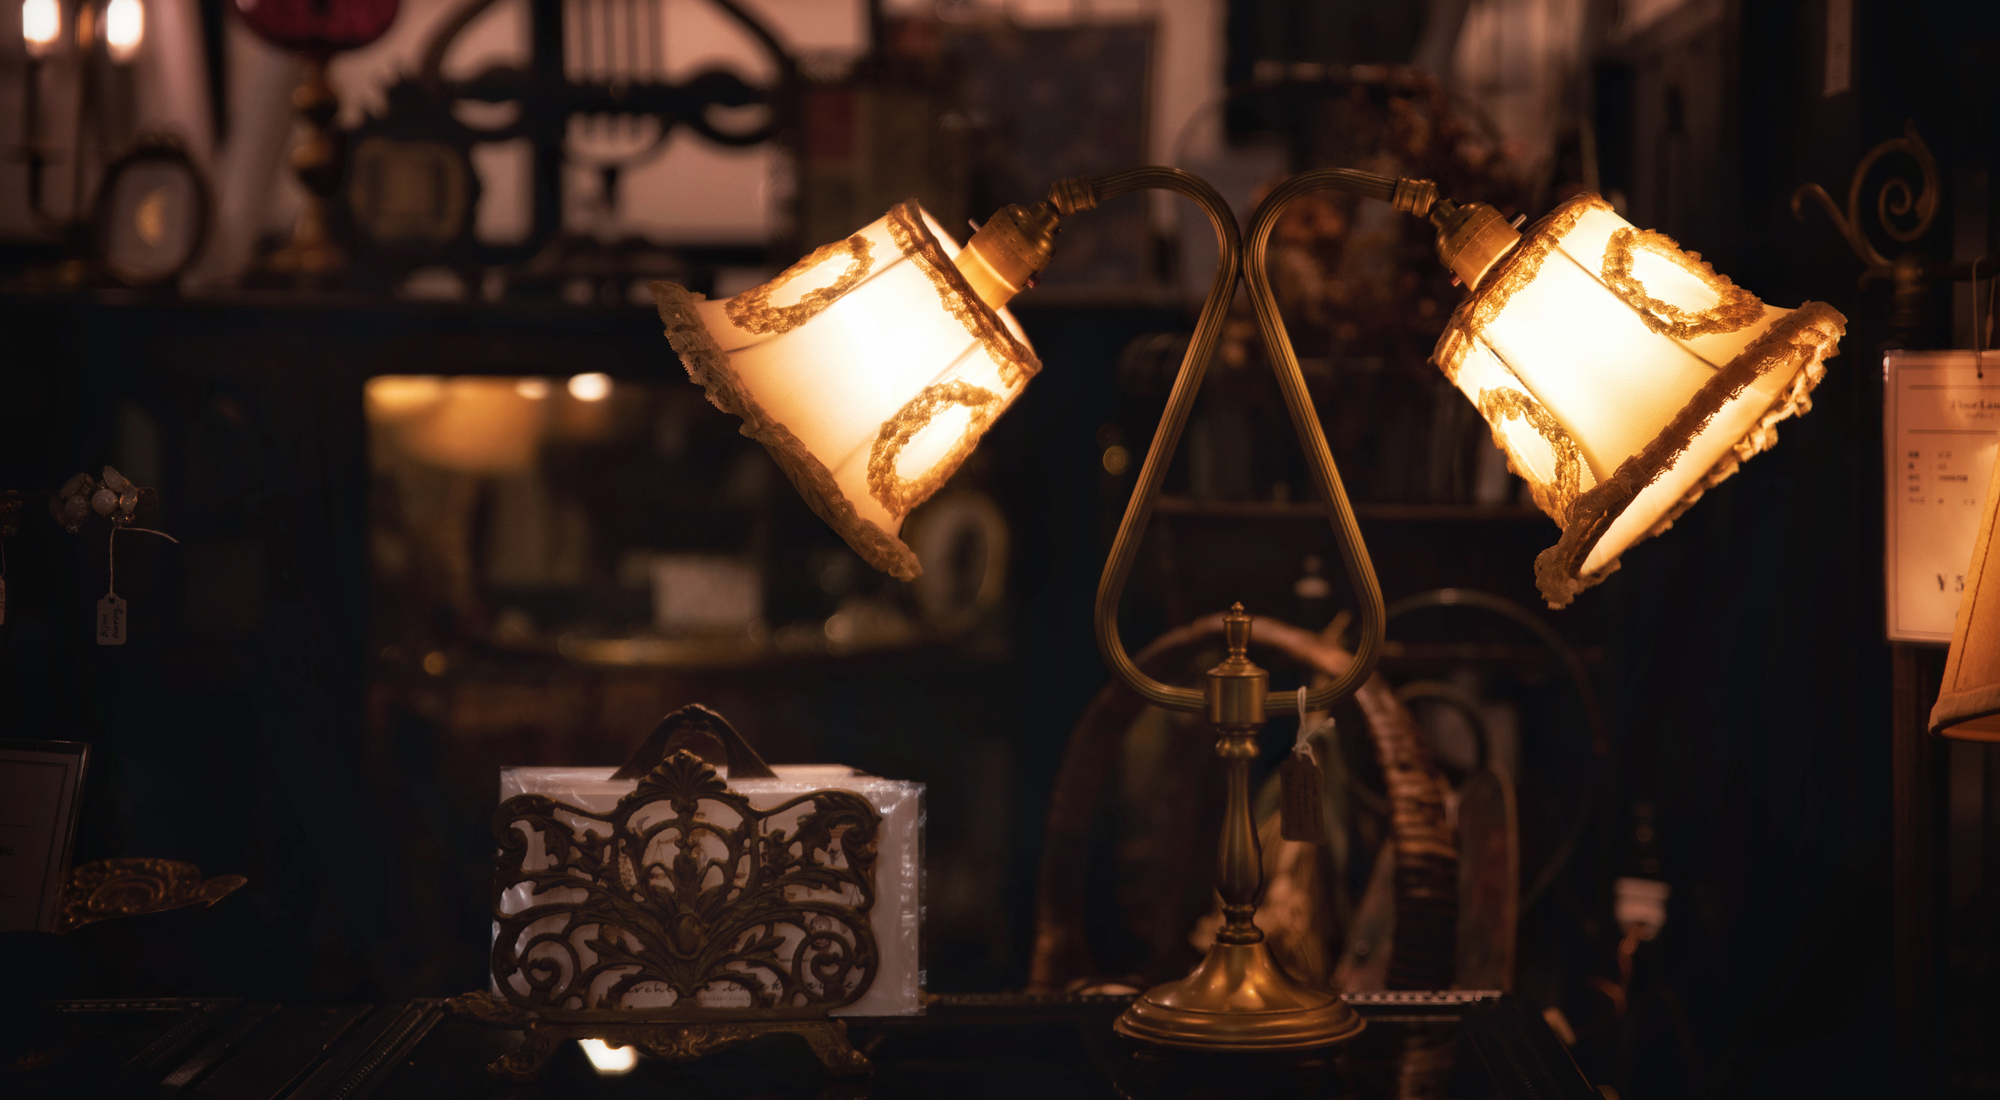 Chronicle displayplanning & antiques All Rights Reserved.